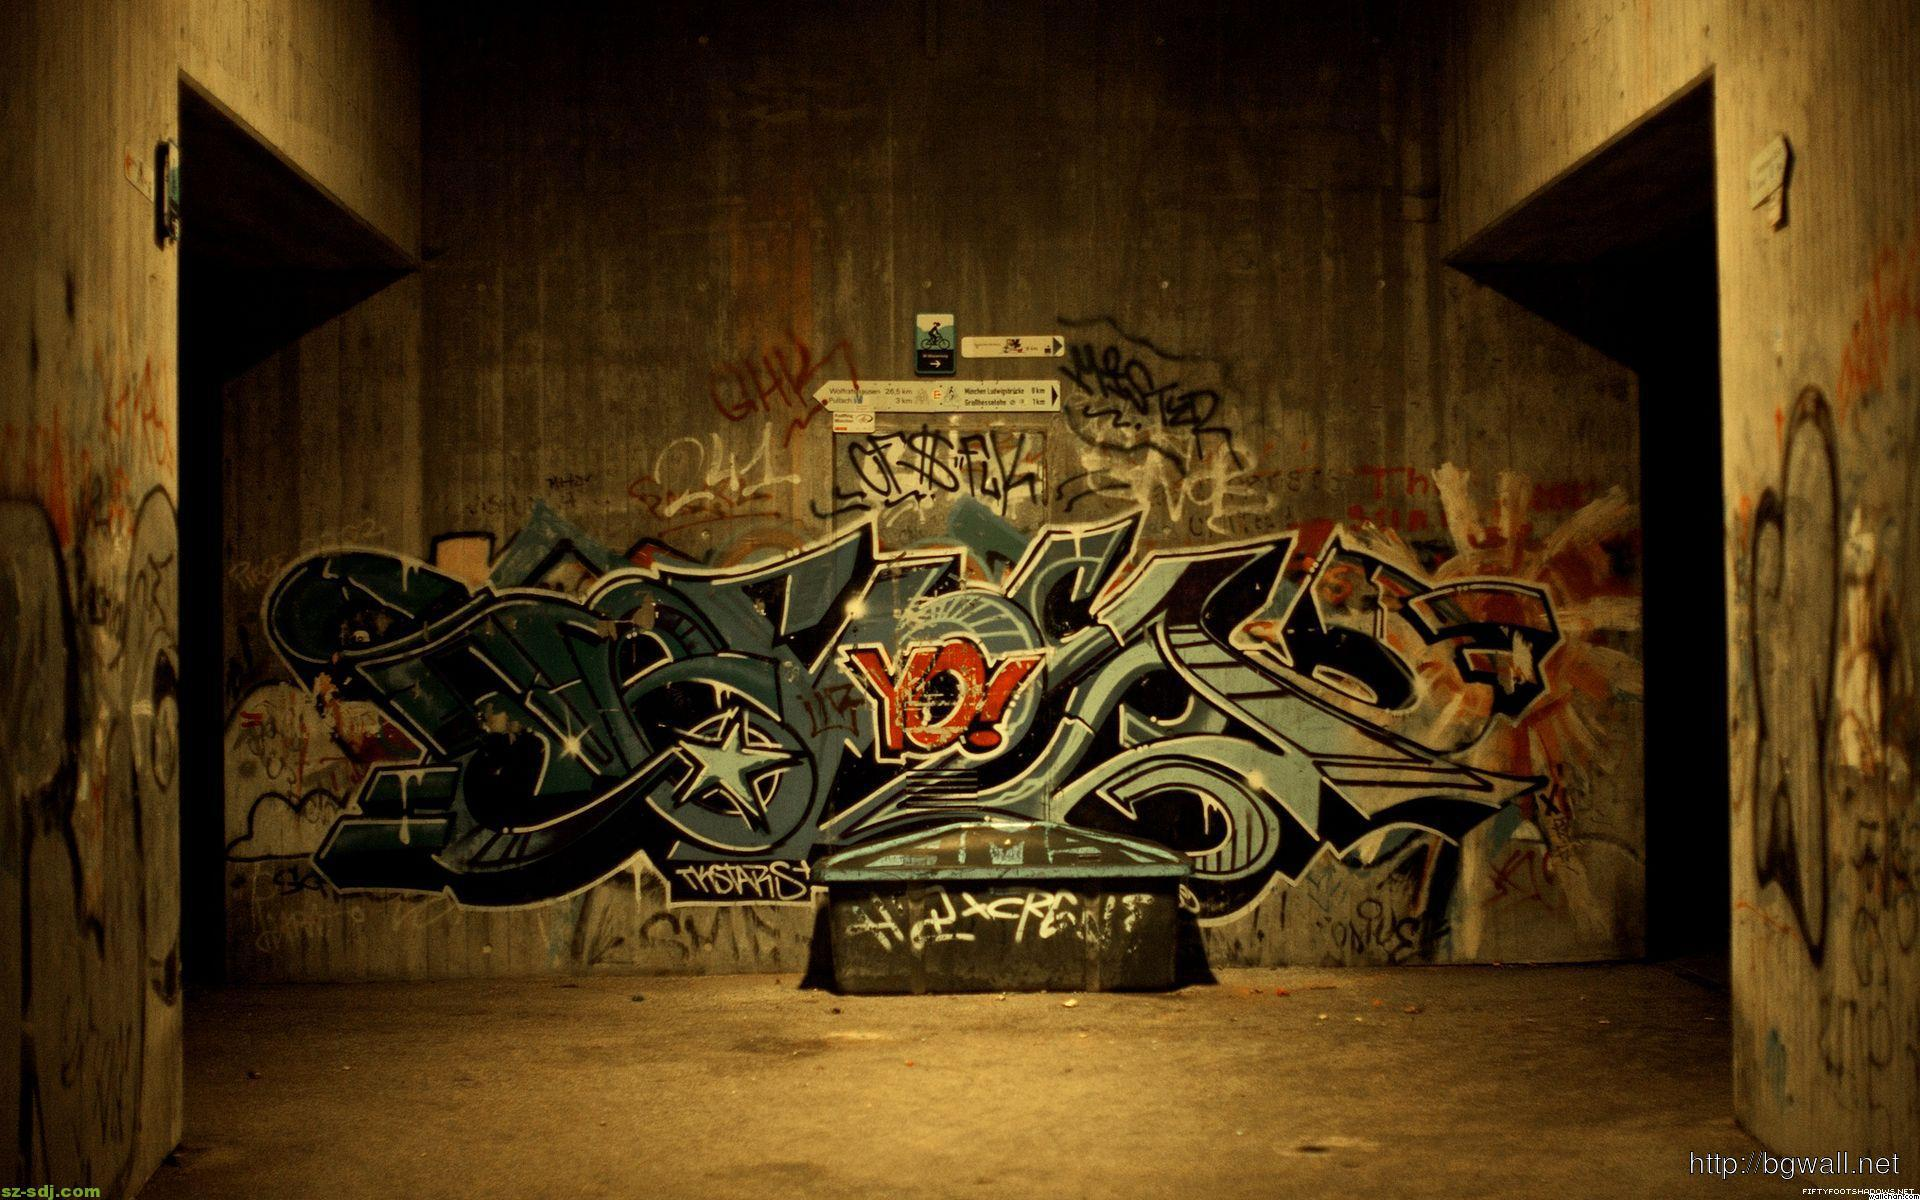 grafiti-hip-hop-wallpaper-desktop